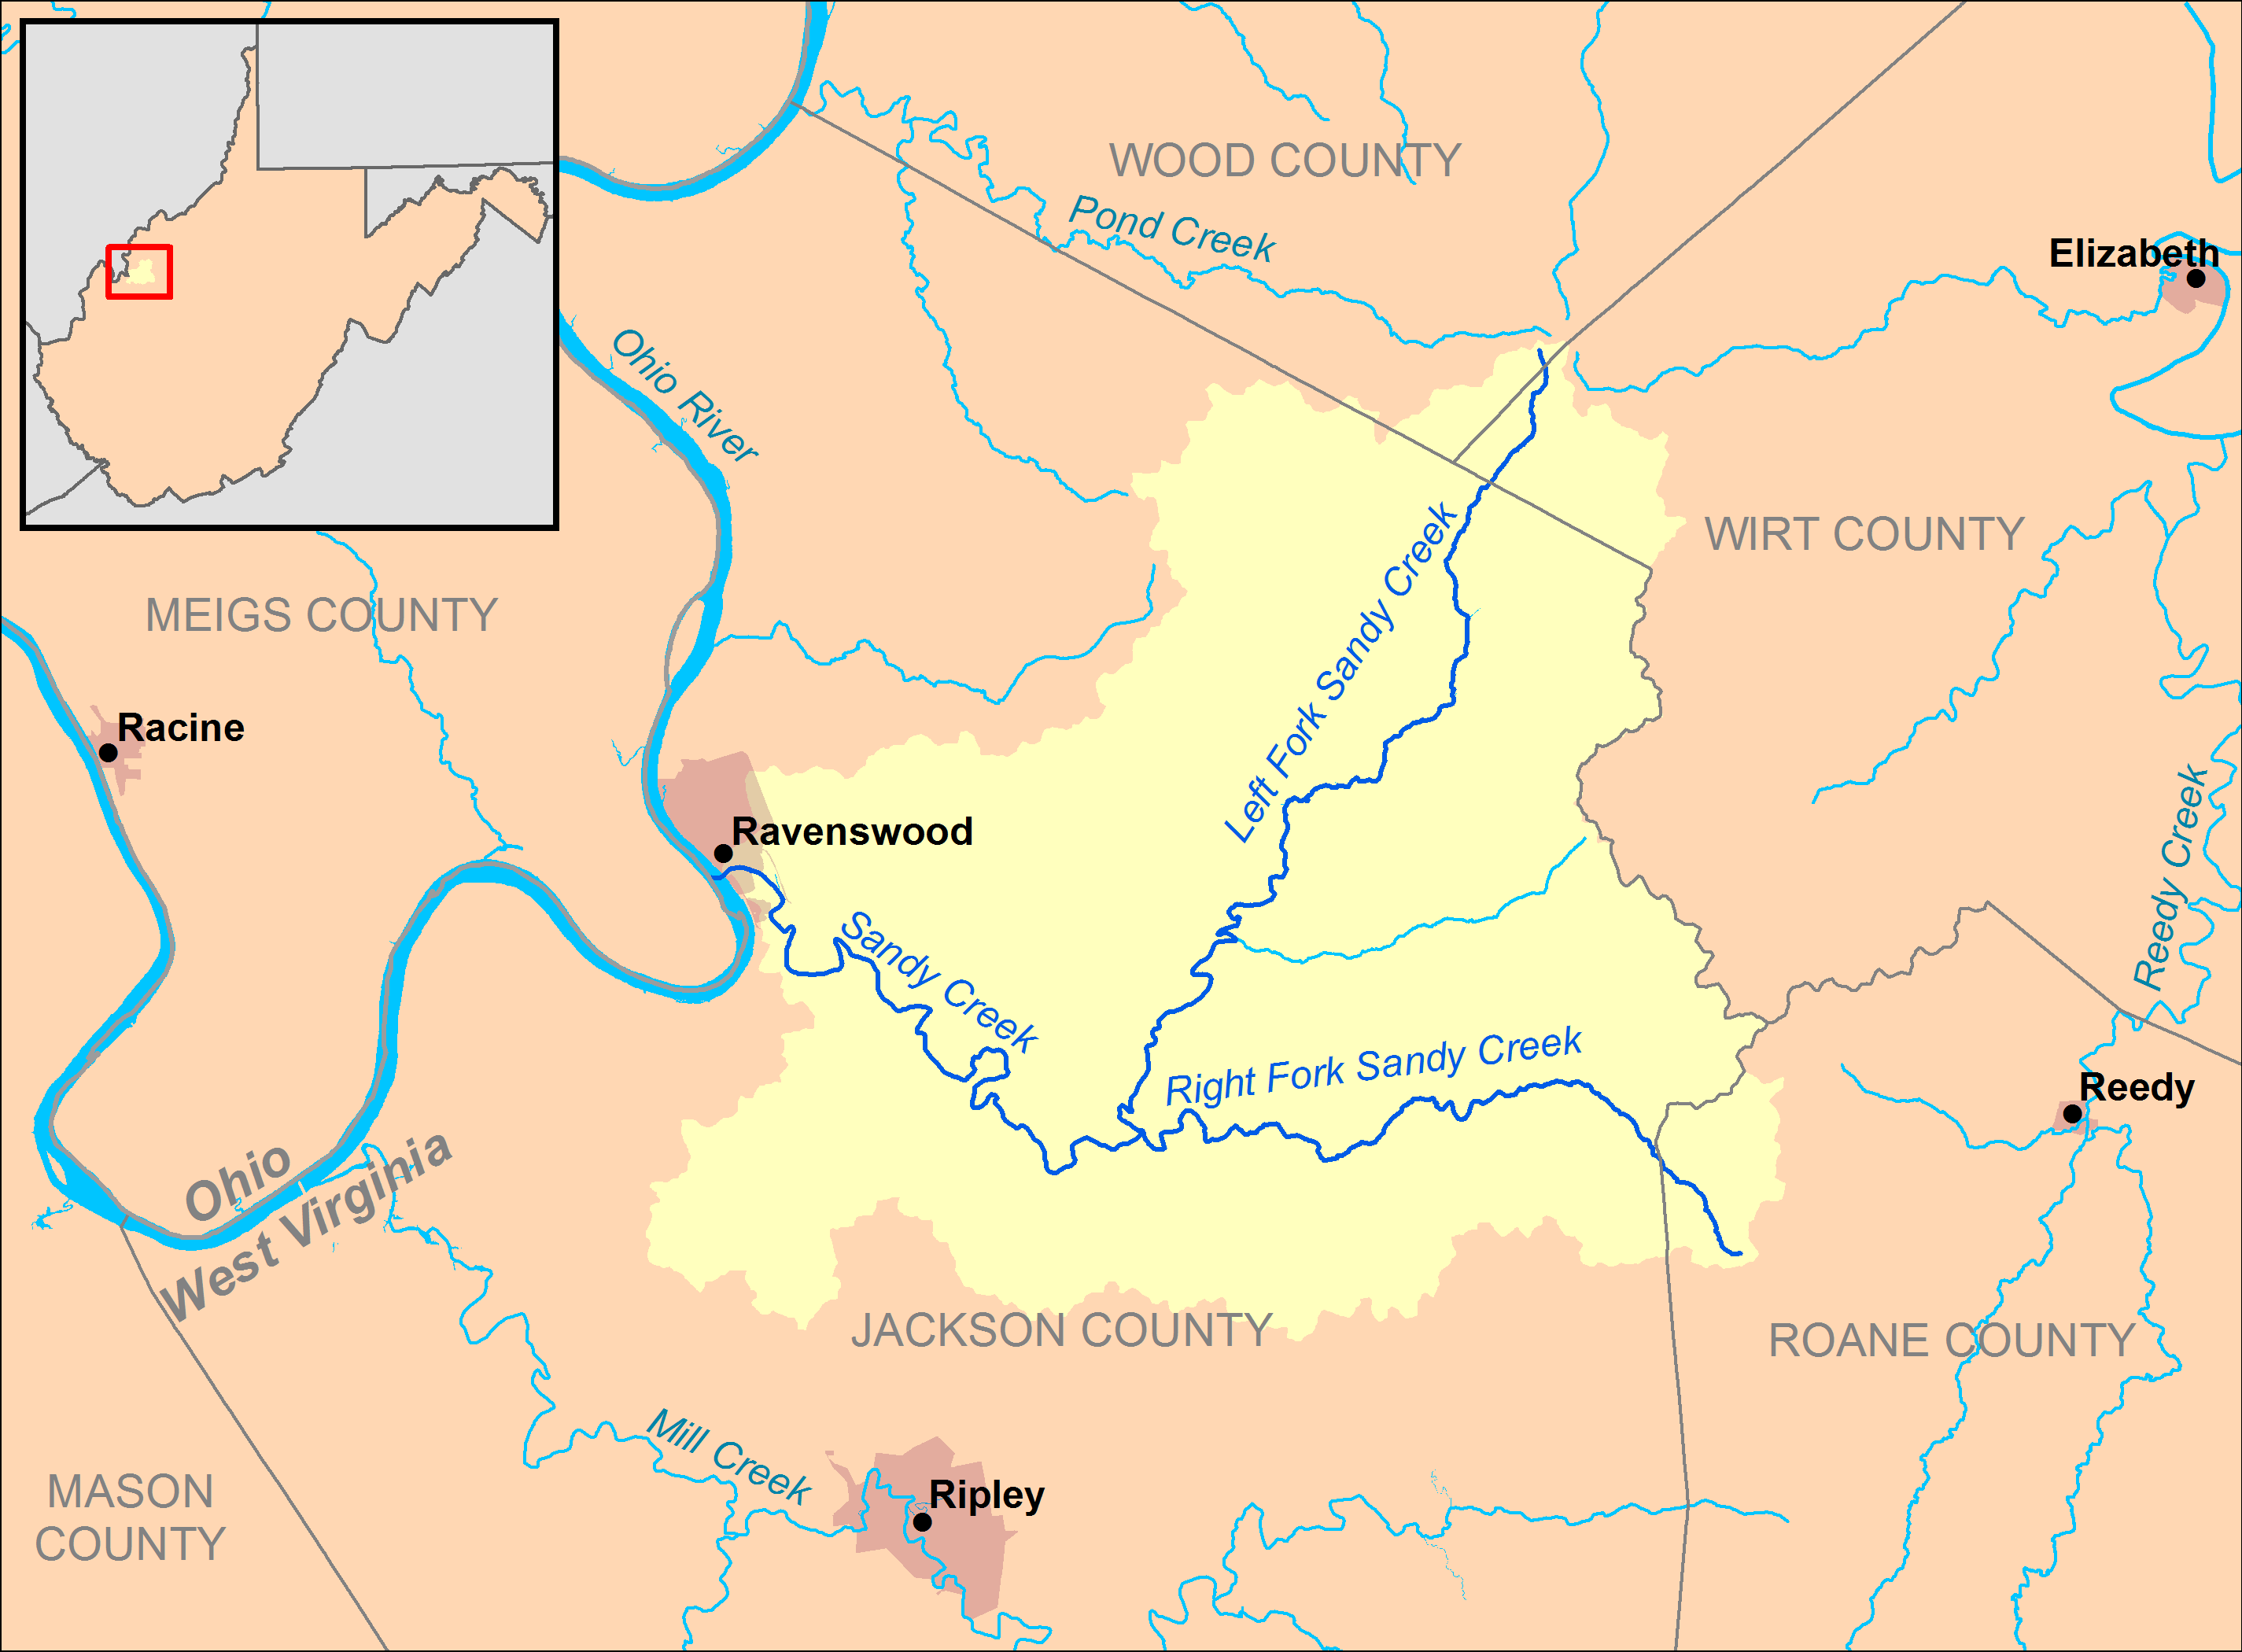 FileSandy Creek Ohio River Mappng Wikimedia Commons - Ohio river map